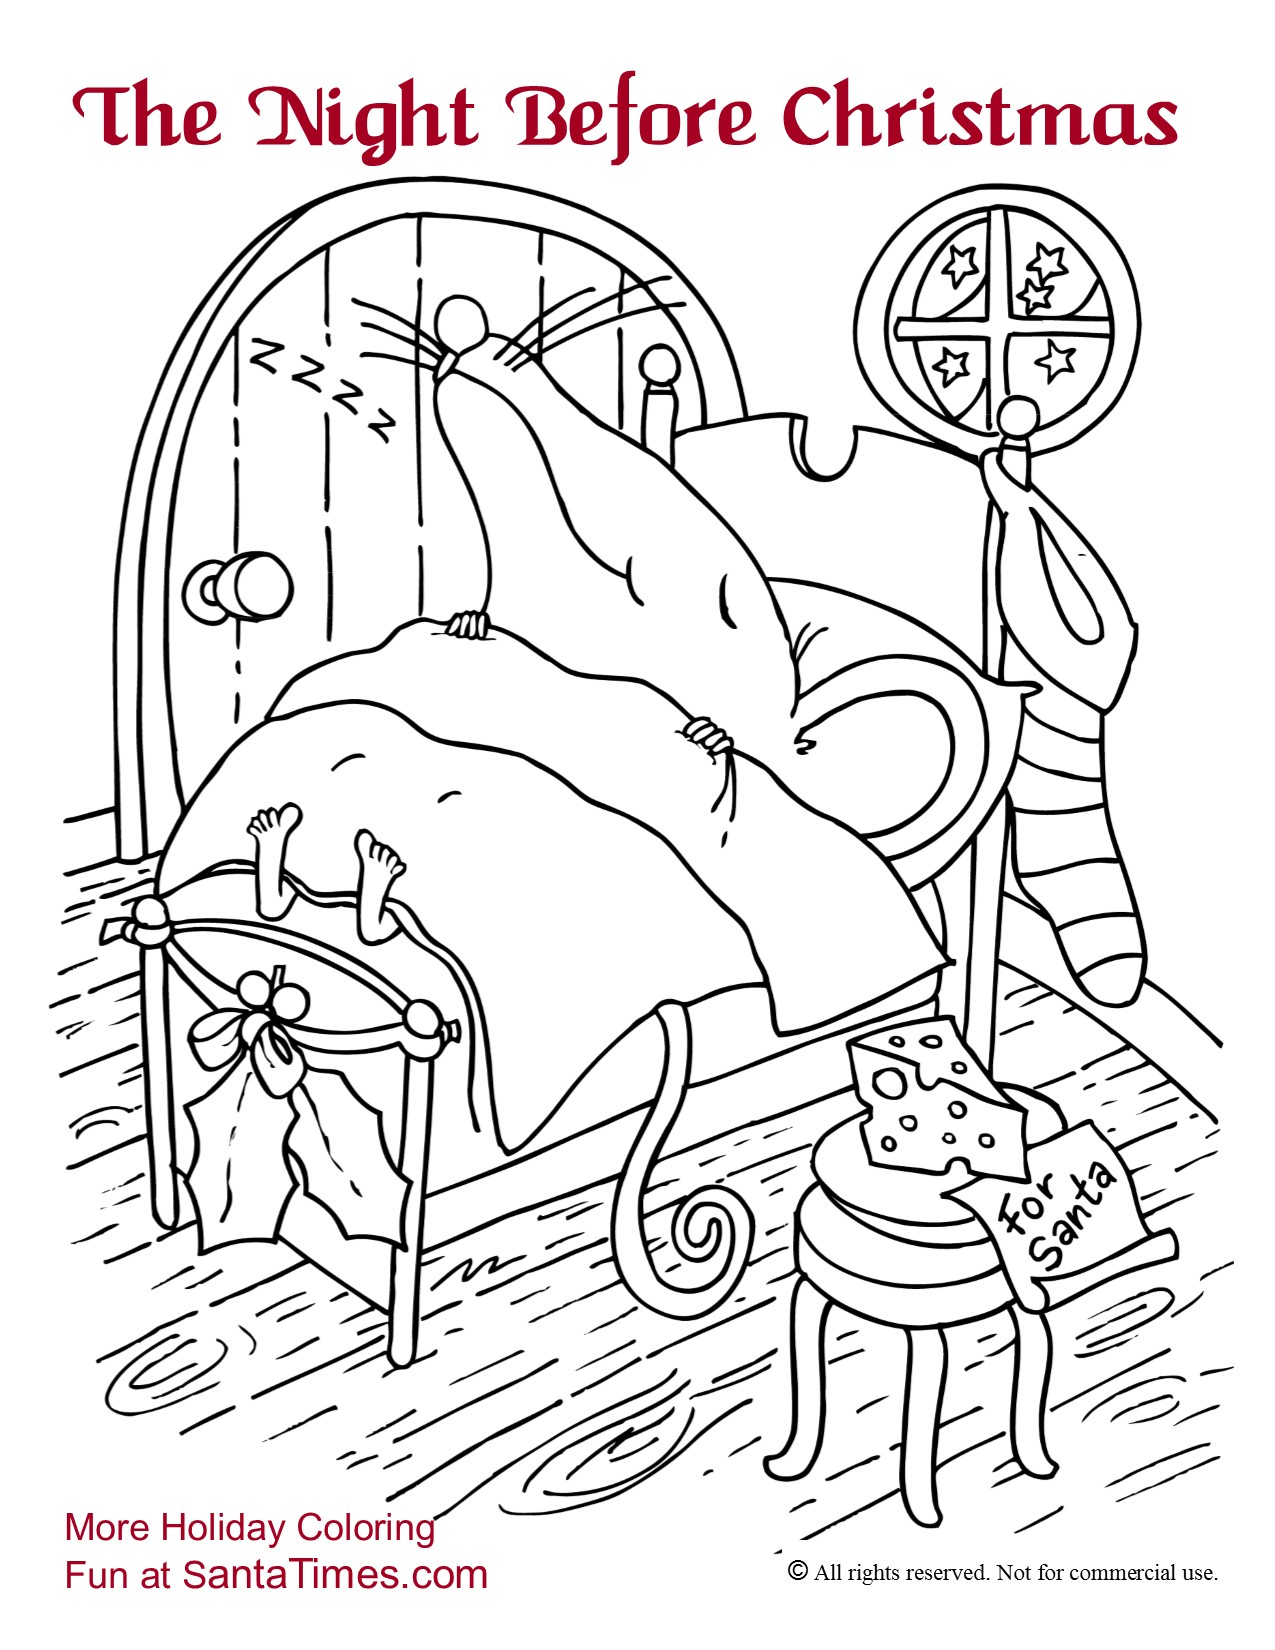 The Night Before Christmas Coloring Page printout